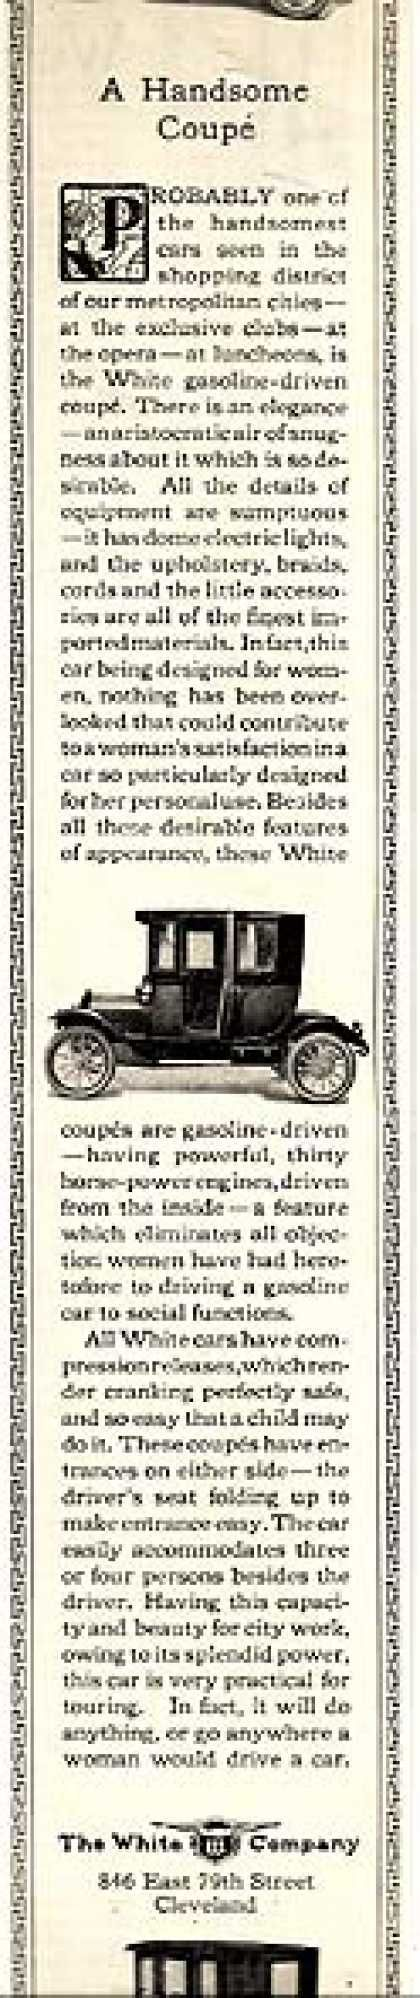 34 best White Car Ads images on Pinterest | Ads, Antique cars and ...